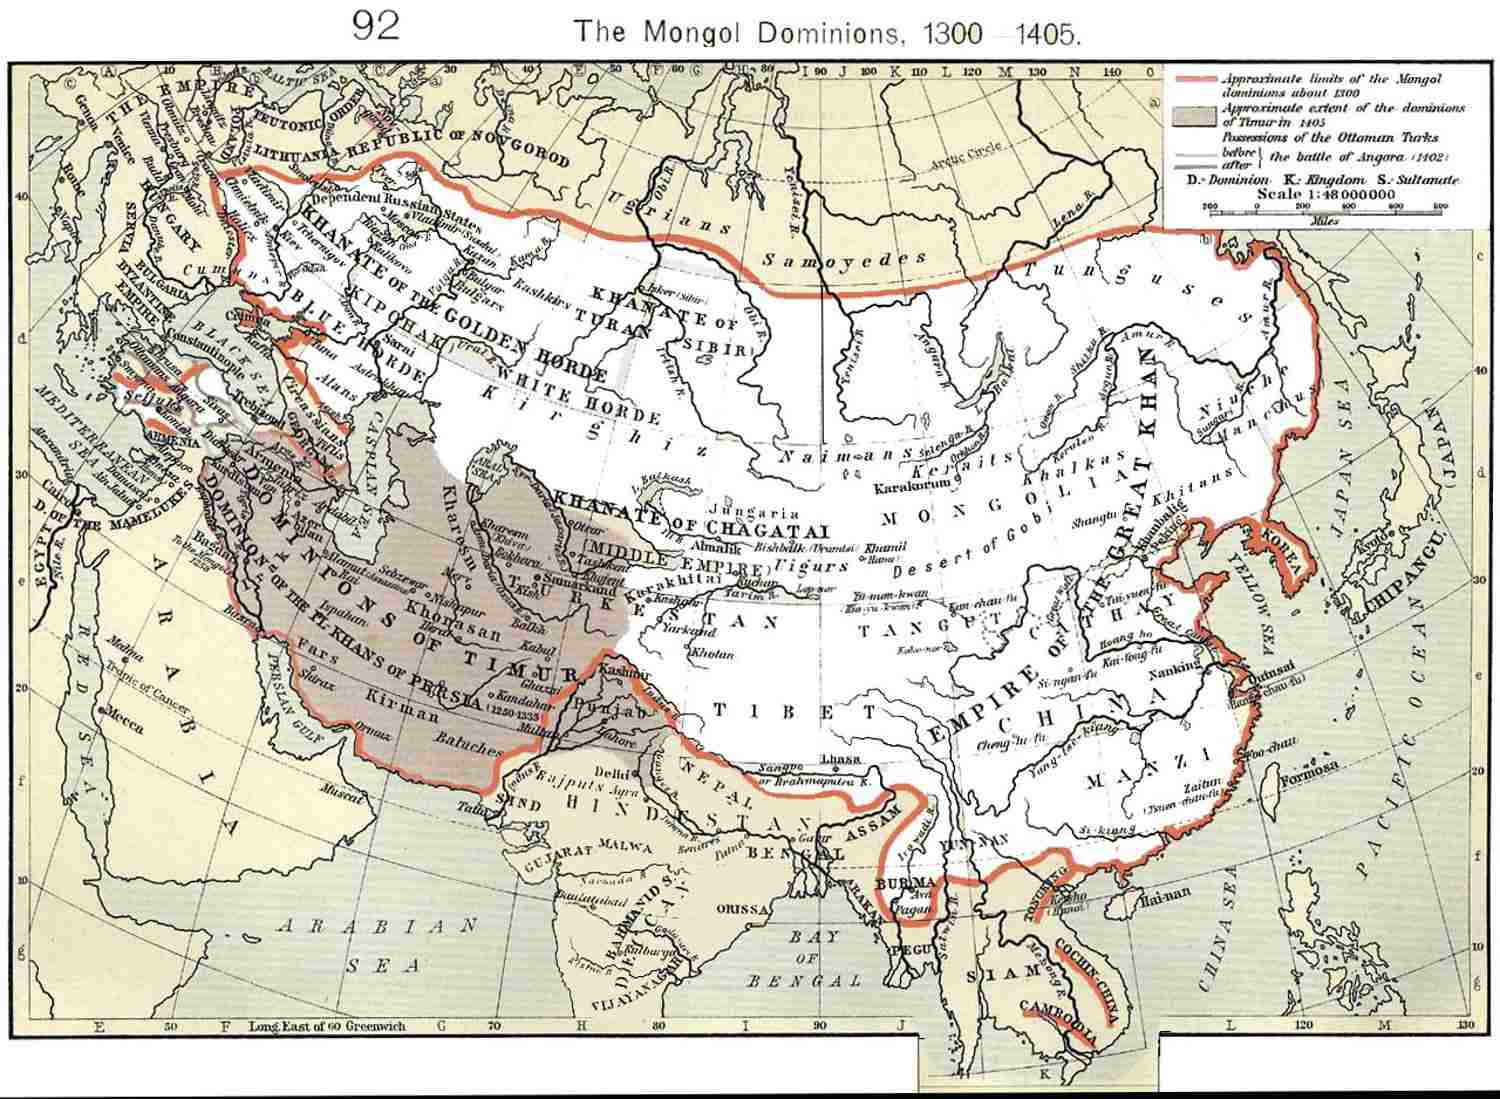 Effects of the Mongol Empire on Europe